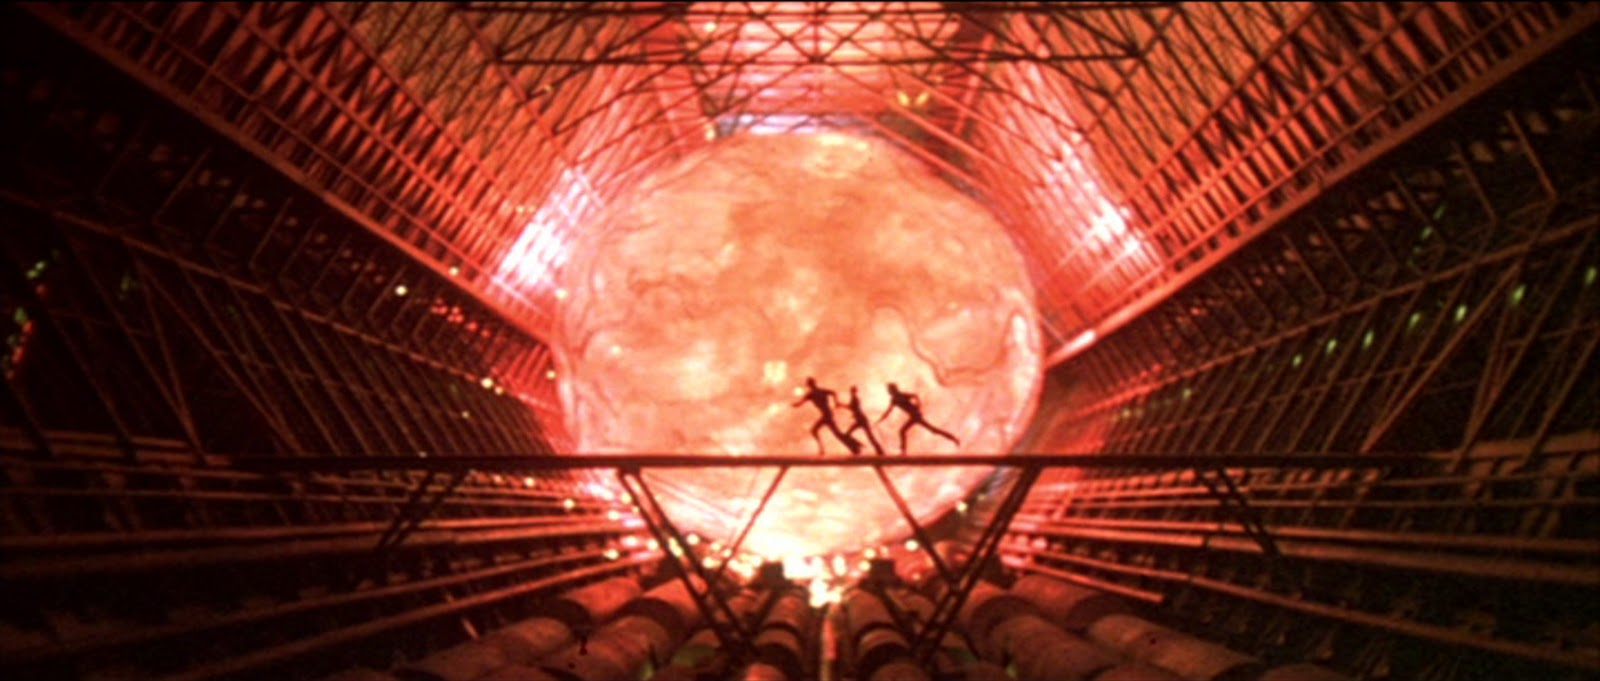 The Black Hole (1979) | The Mind Reels